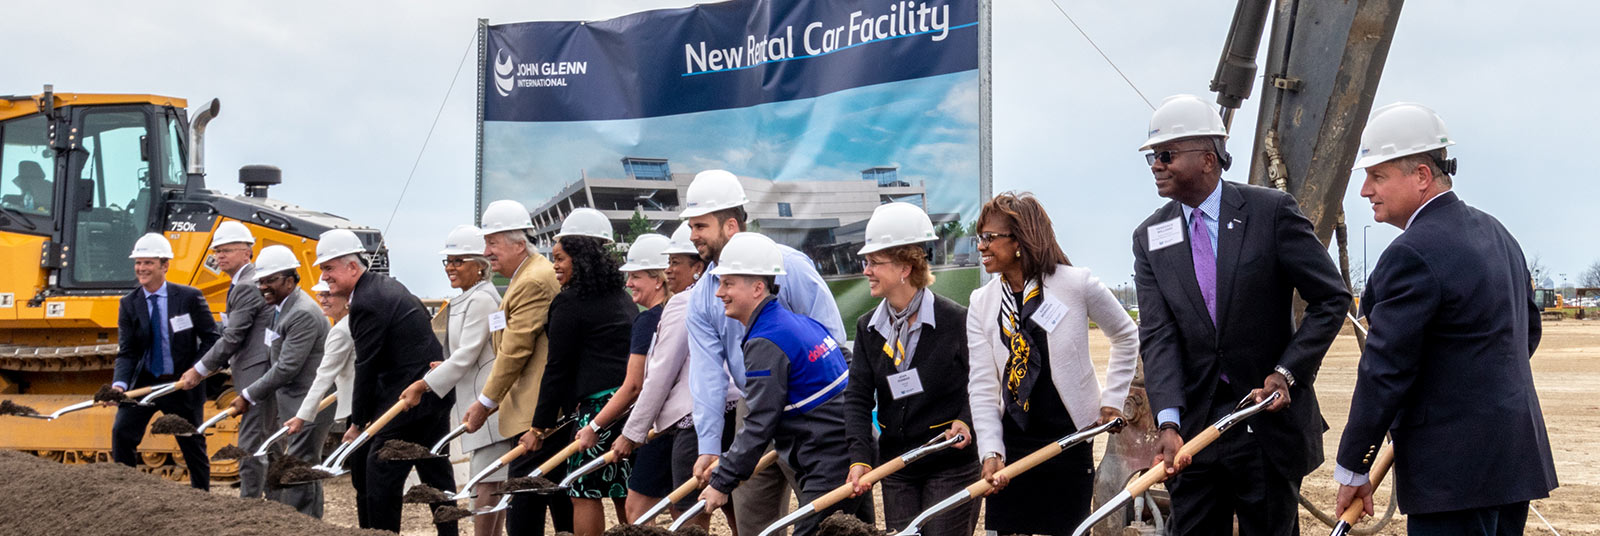 The design and construction team celebrates the groundbreaking of the new Consolidated Rental Car Facility at the John Glenn Columbus International Airport.